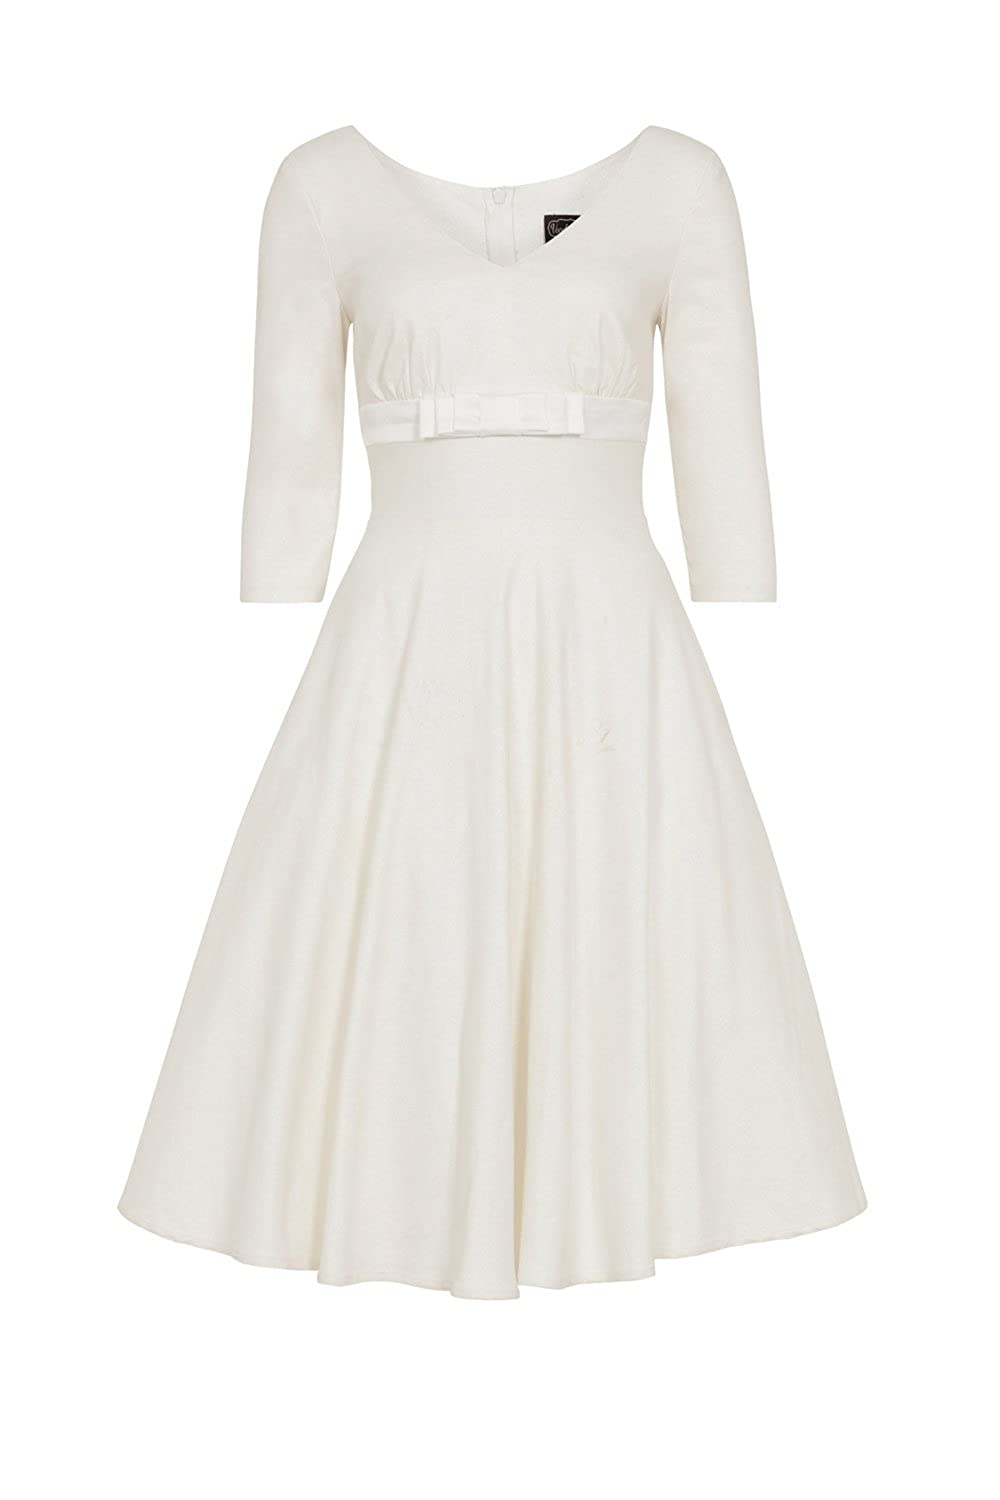 60s Wedding Dress | 1960s Style Wedding Dresses Voodoo Vixen Dorothy Bridal Plus Size Dress £62.50 AT vintagedancer.com